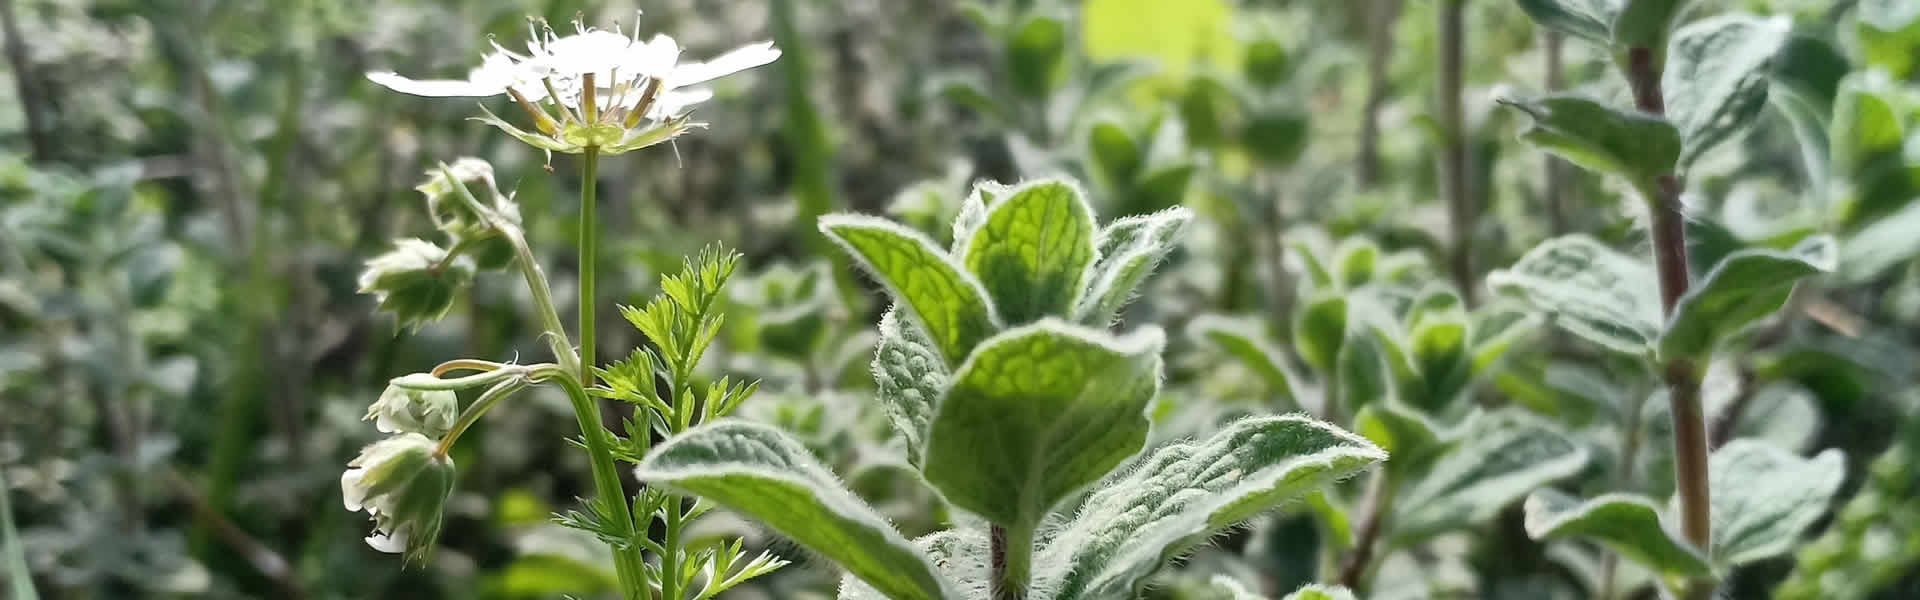 How to Use Oregano to Improve Your Home Health with Dr. Cass Ingram